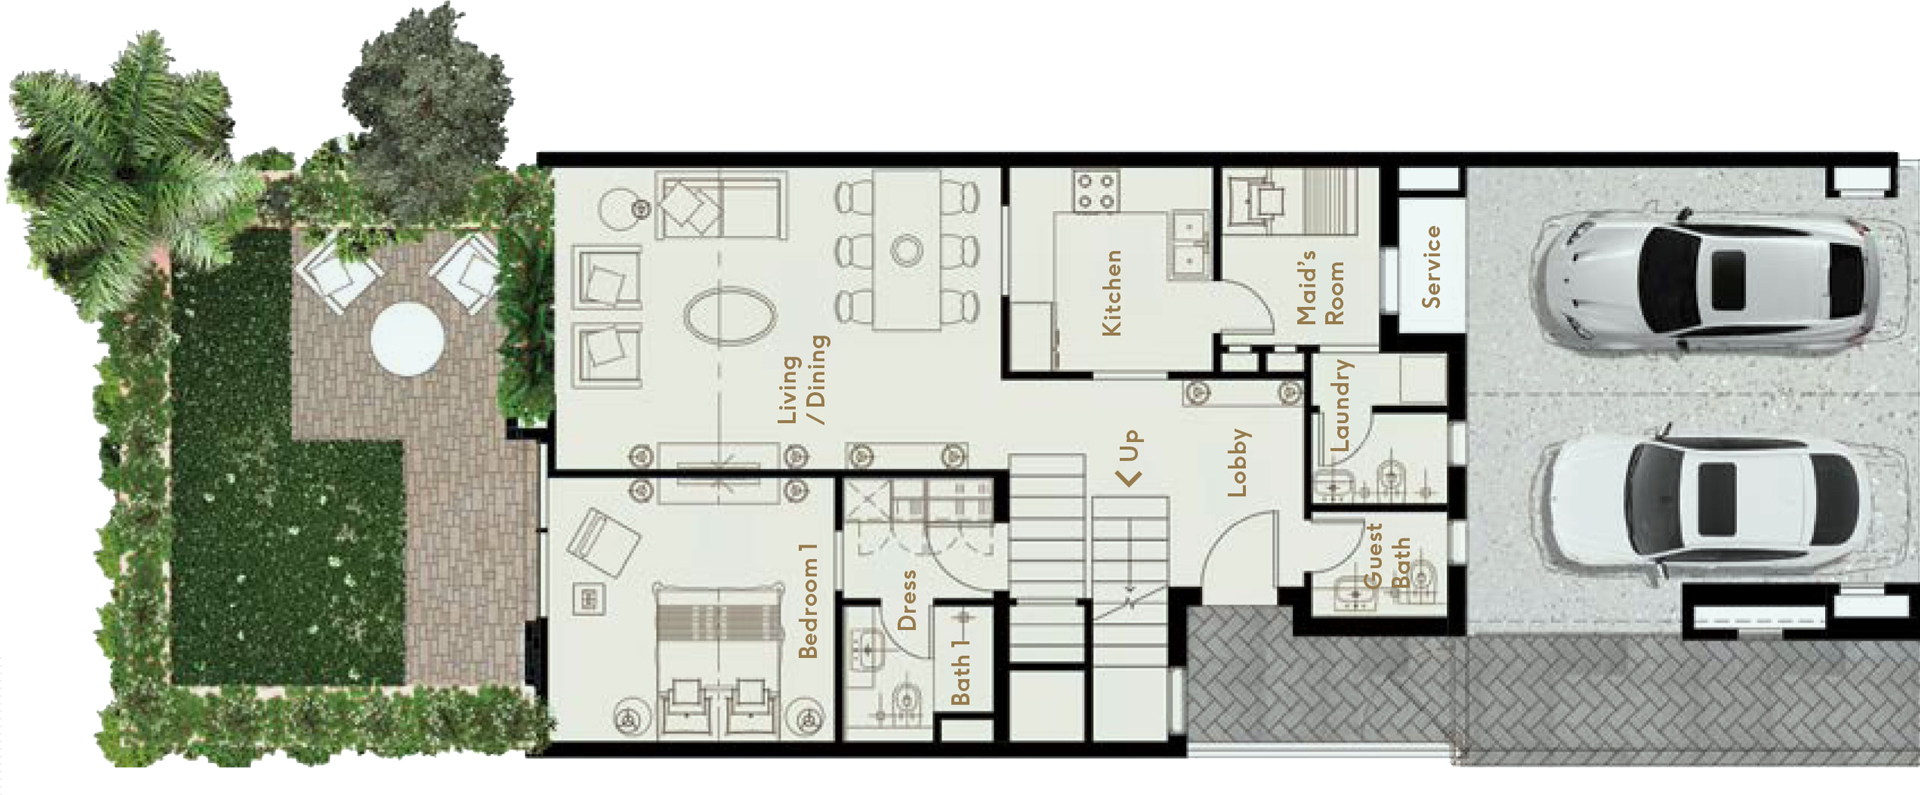 J4 - Ground Floor/ 4 Bedrooms, Family Room and Maid's Room